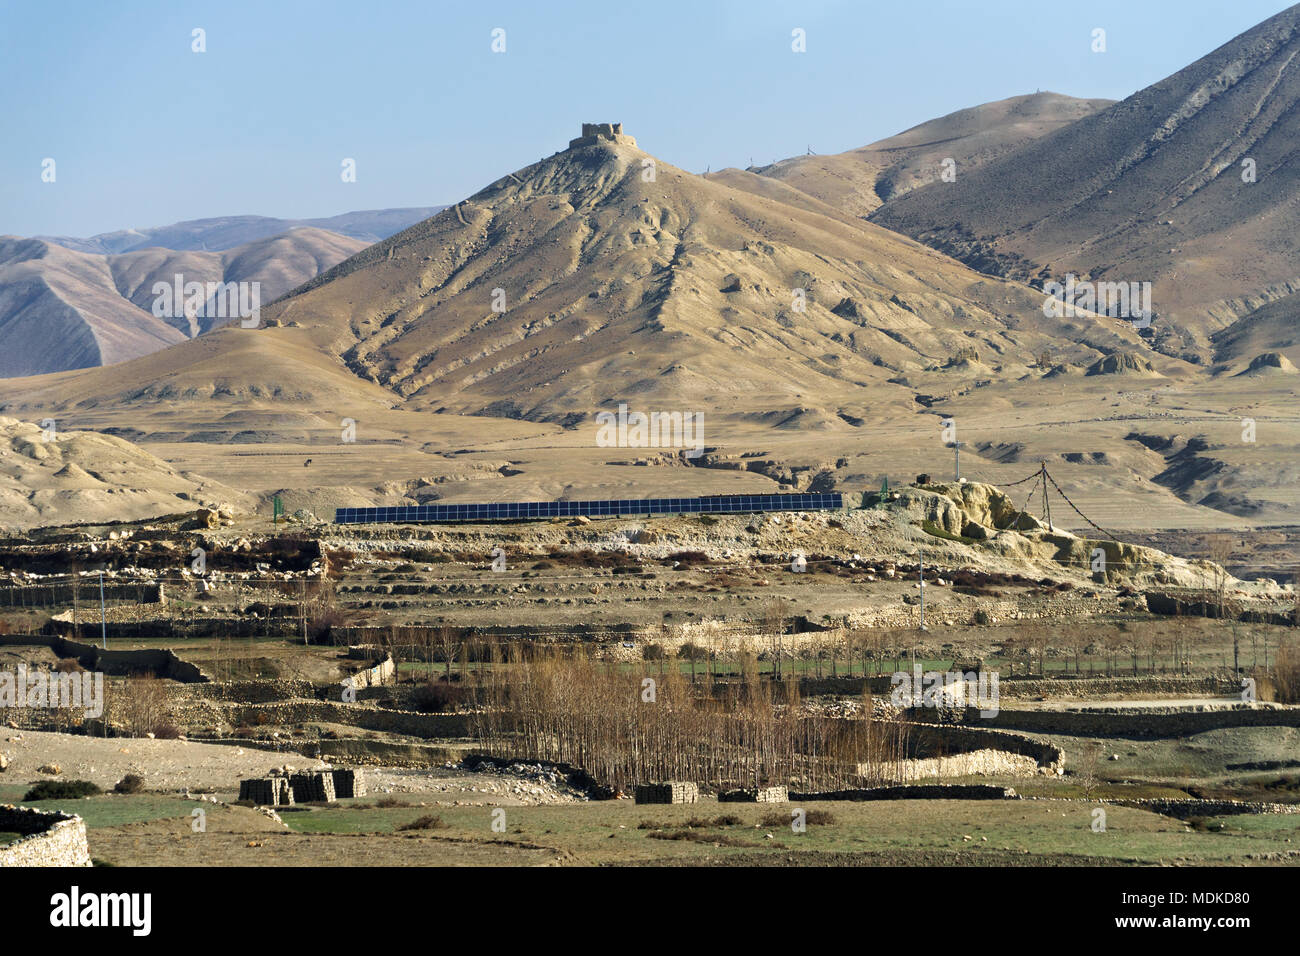 Ruins of Ame Pal's palace overlooking Lo Manthang, Upper Mustang region, Nepal. Double row of solar panels visible in the foreground. - Stock Image